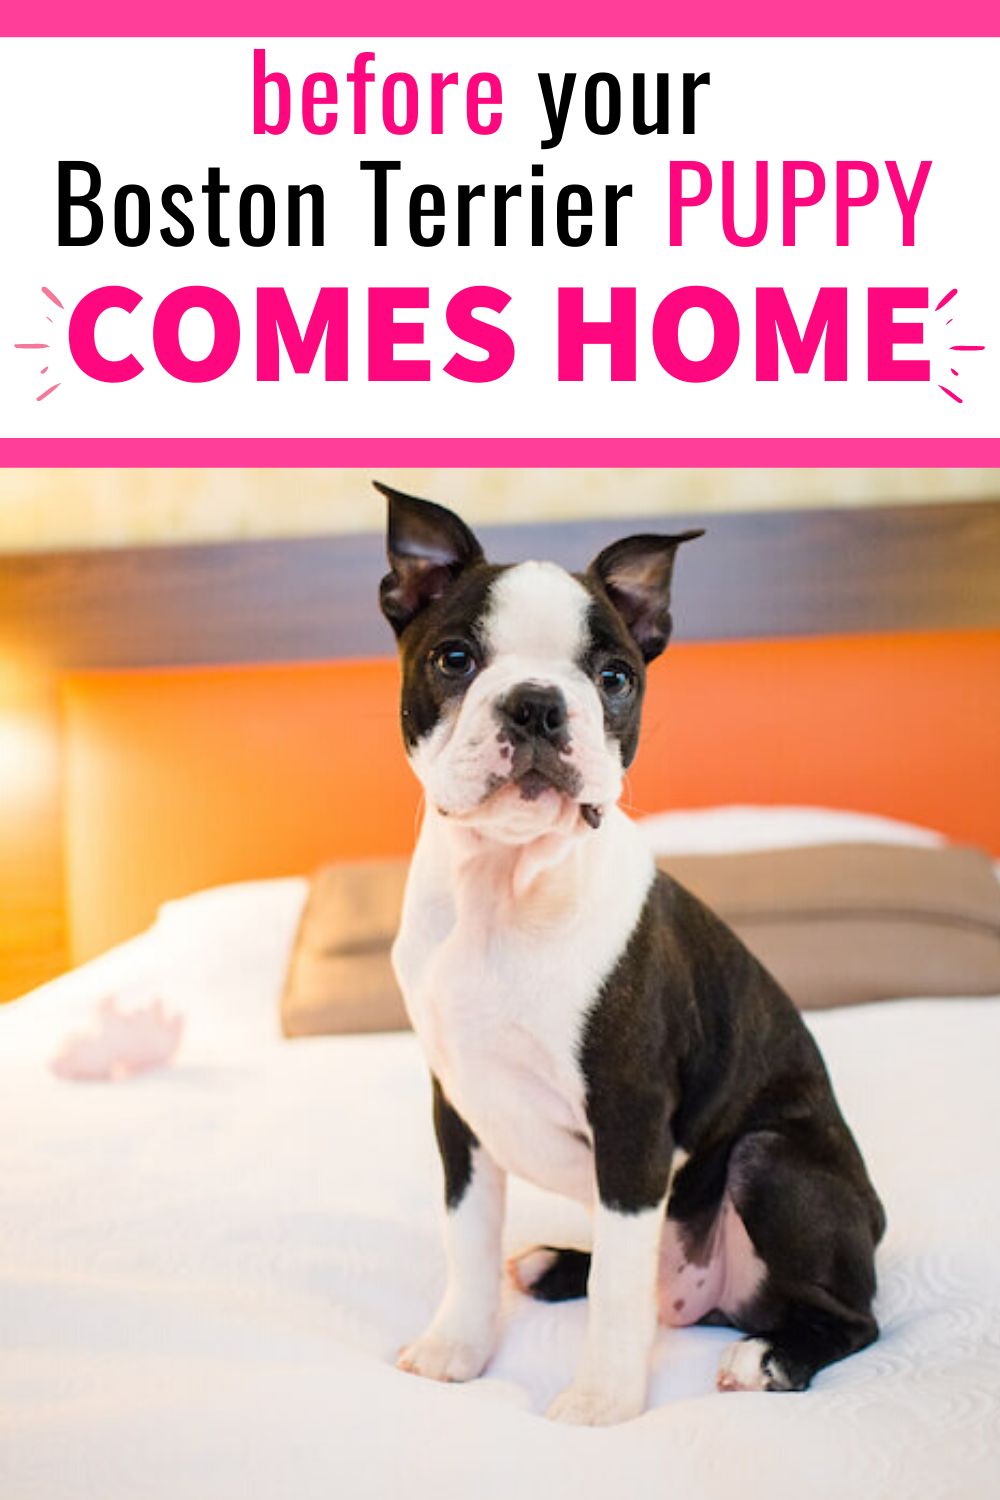 How To Get Ready For A Boston Terrier Puppy In 2020 Boston Terrier Puppy Boston Terrier Terrier